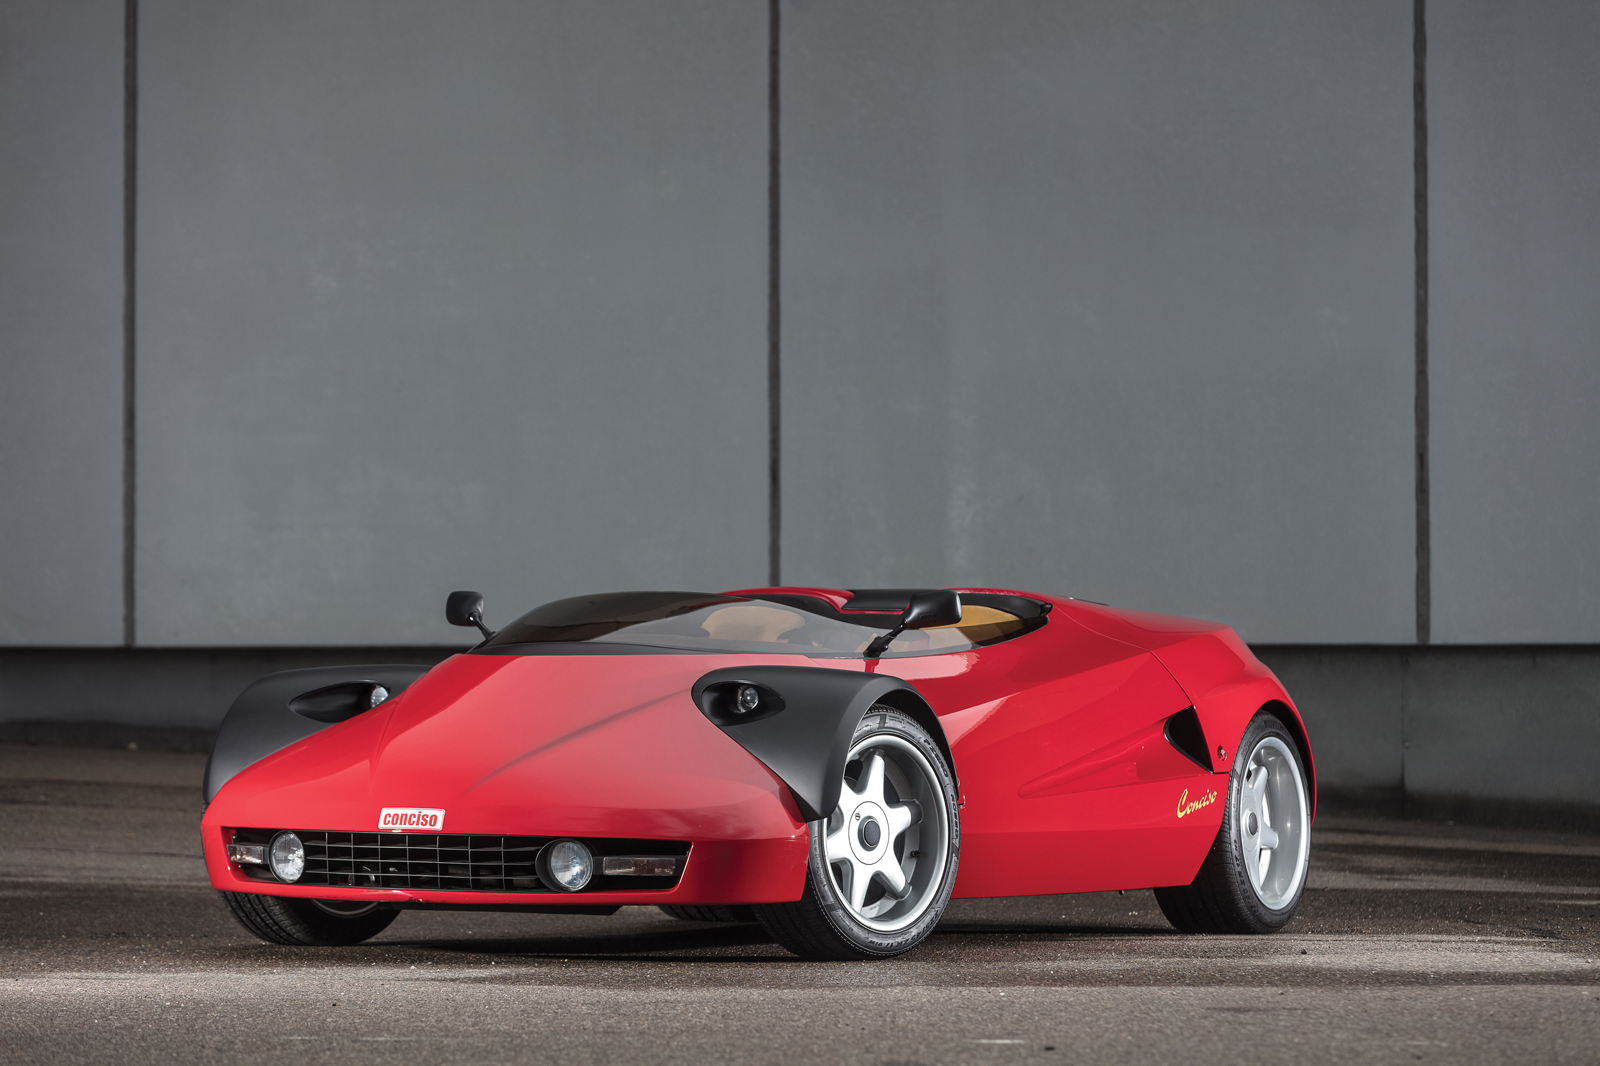 Behold, the Wonderful and Terrible Ferrari 328 Conciso by Michalak